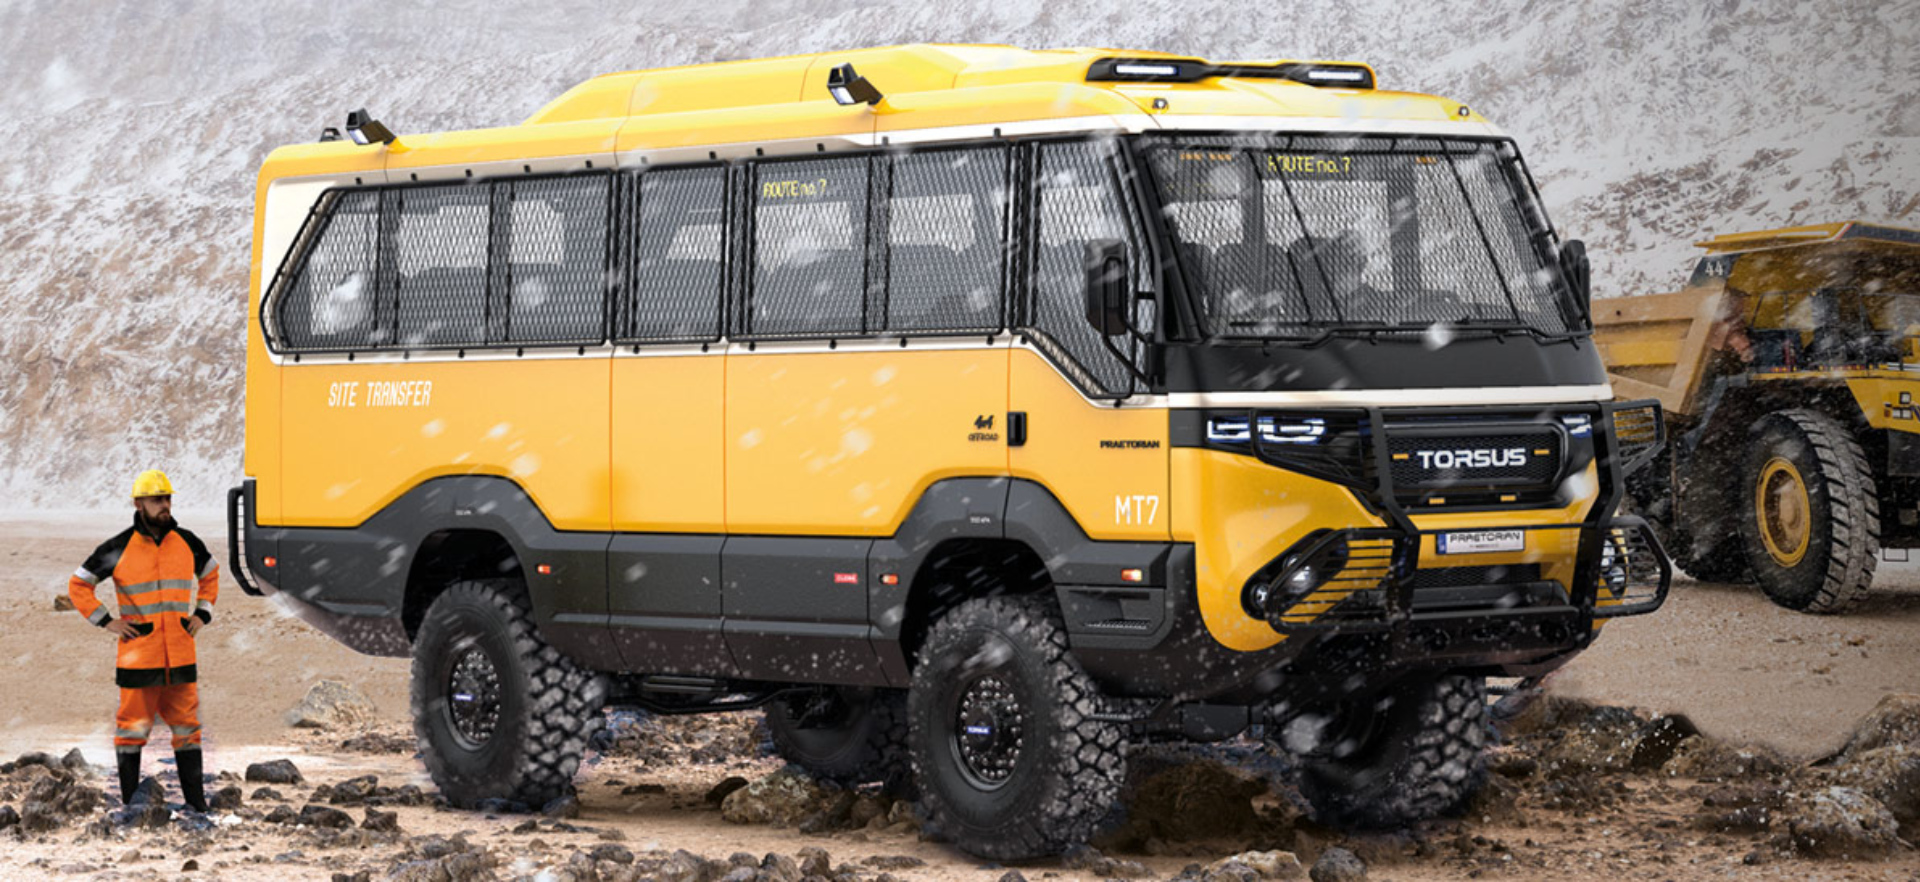 Check out the world's first heavy-duty 4x4 off-road bus that's won a Red Dot Design Award